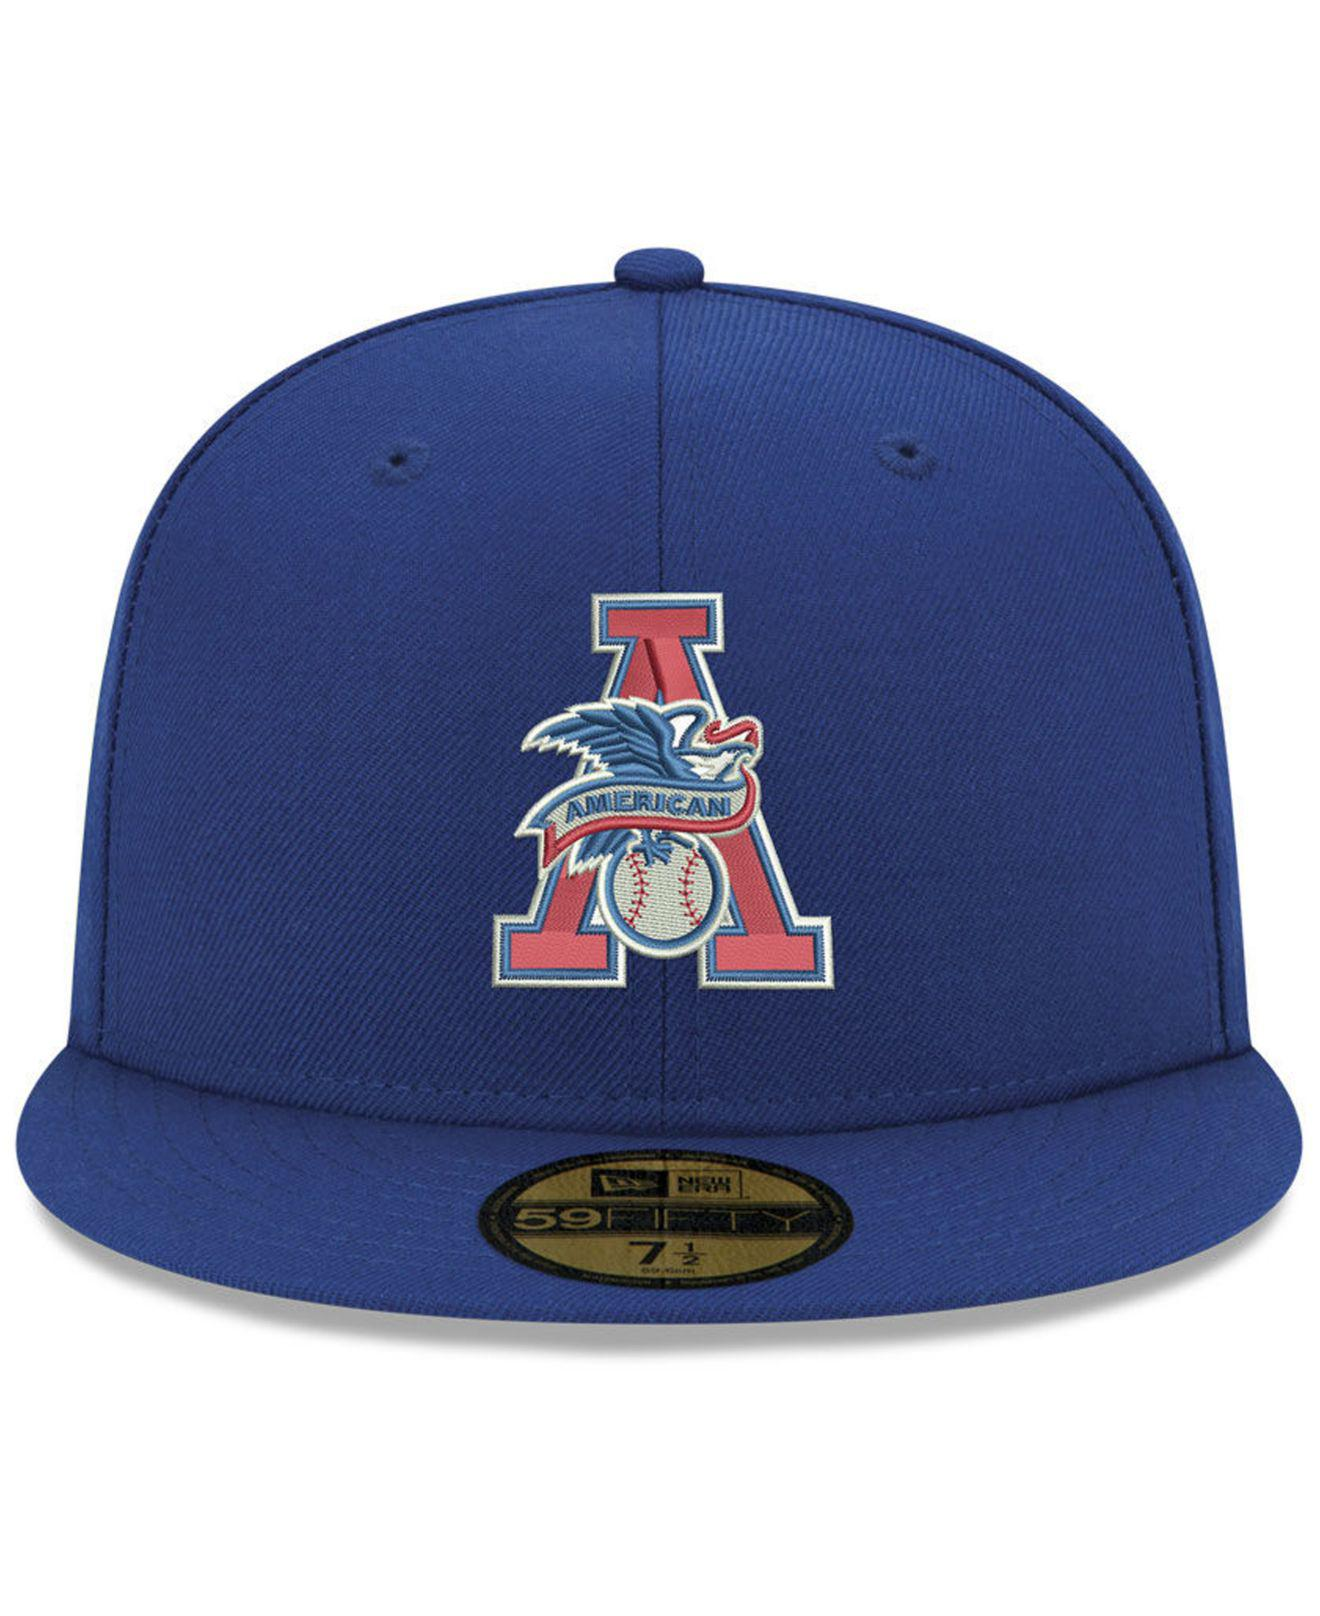 Lyst - Ktz Texas Rangers League Front 59fifty Fitted Cap in Blue for Men 6e34ccdeb1eb